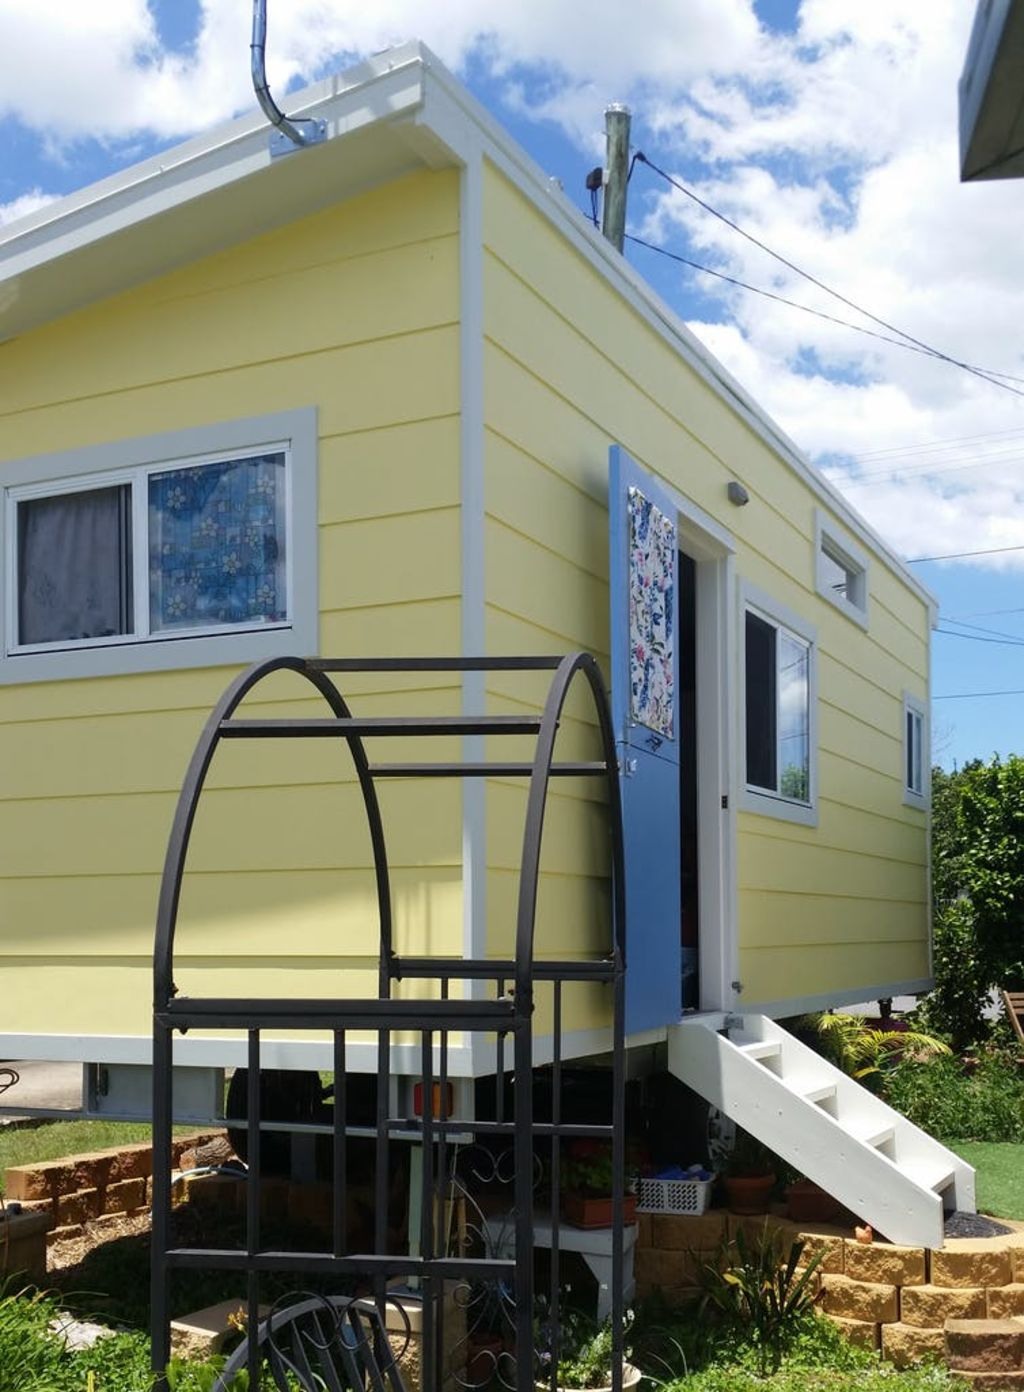 Very few people actually live in tiny houses. So, why the discrepancy? Photo: Heather Shearer